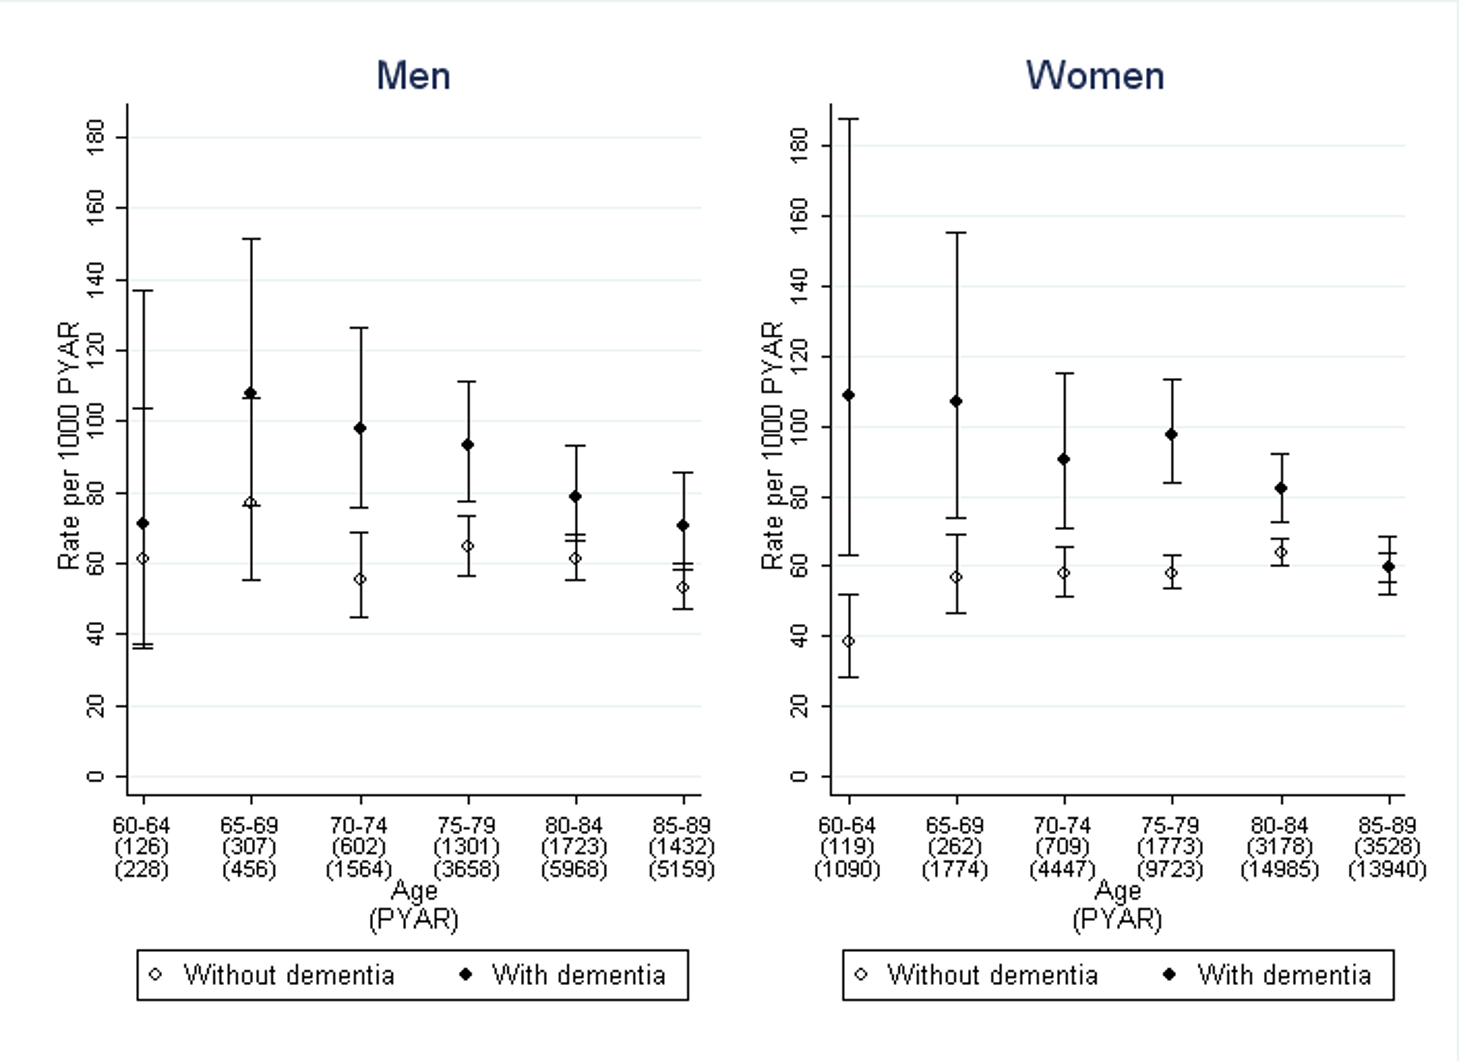 Rates of first use of pharmacological treatment for urinary incontinence in men and women with dementia compared to those without.